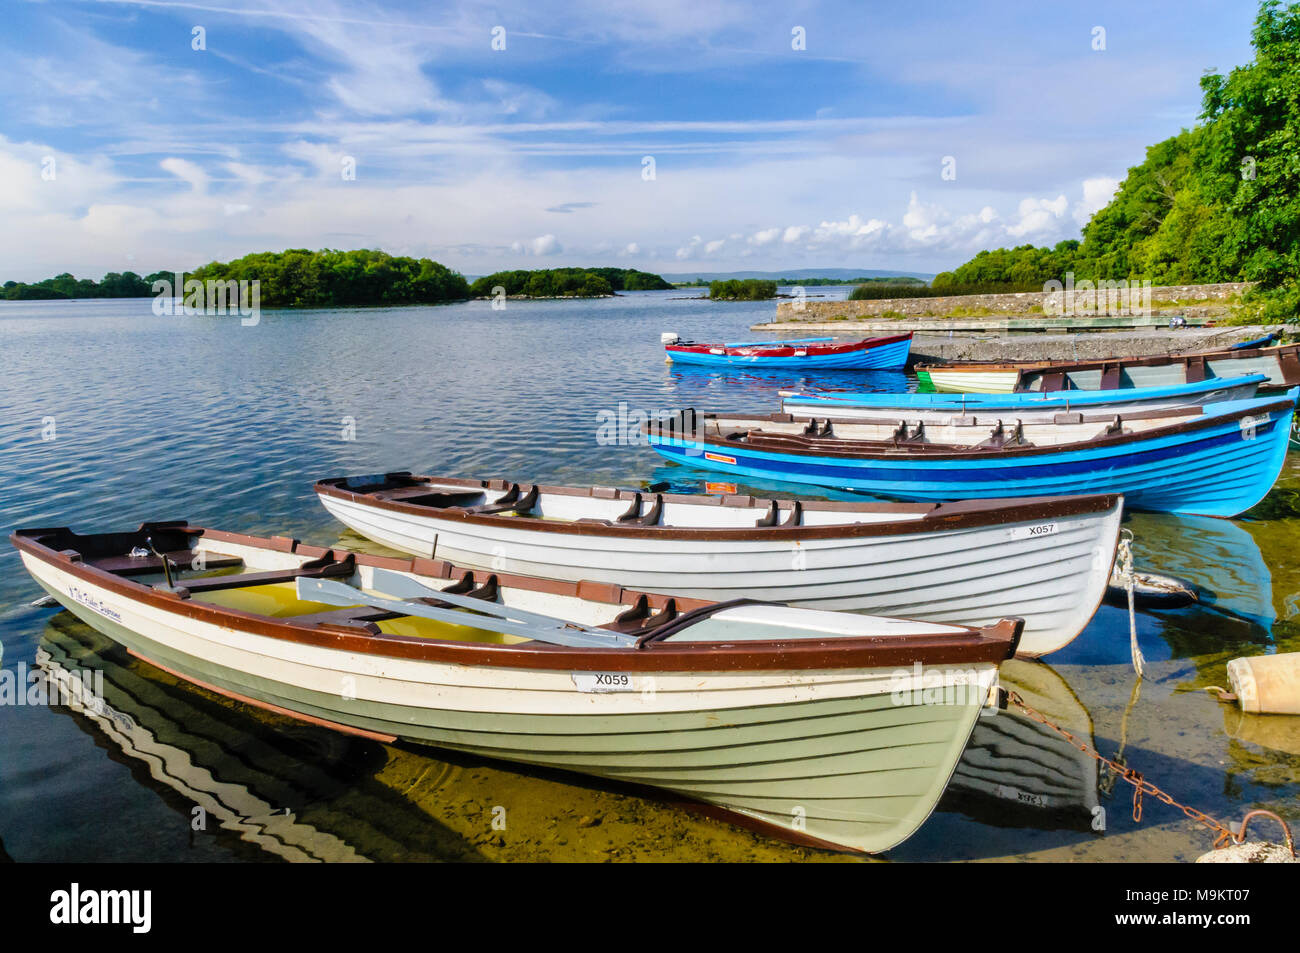 Rowing boats filled with water sit moored up at the Irish Lough Corrib, Galway, Ireland. - Stock Image